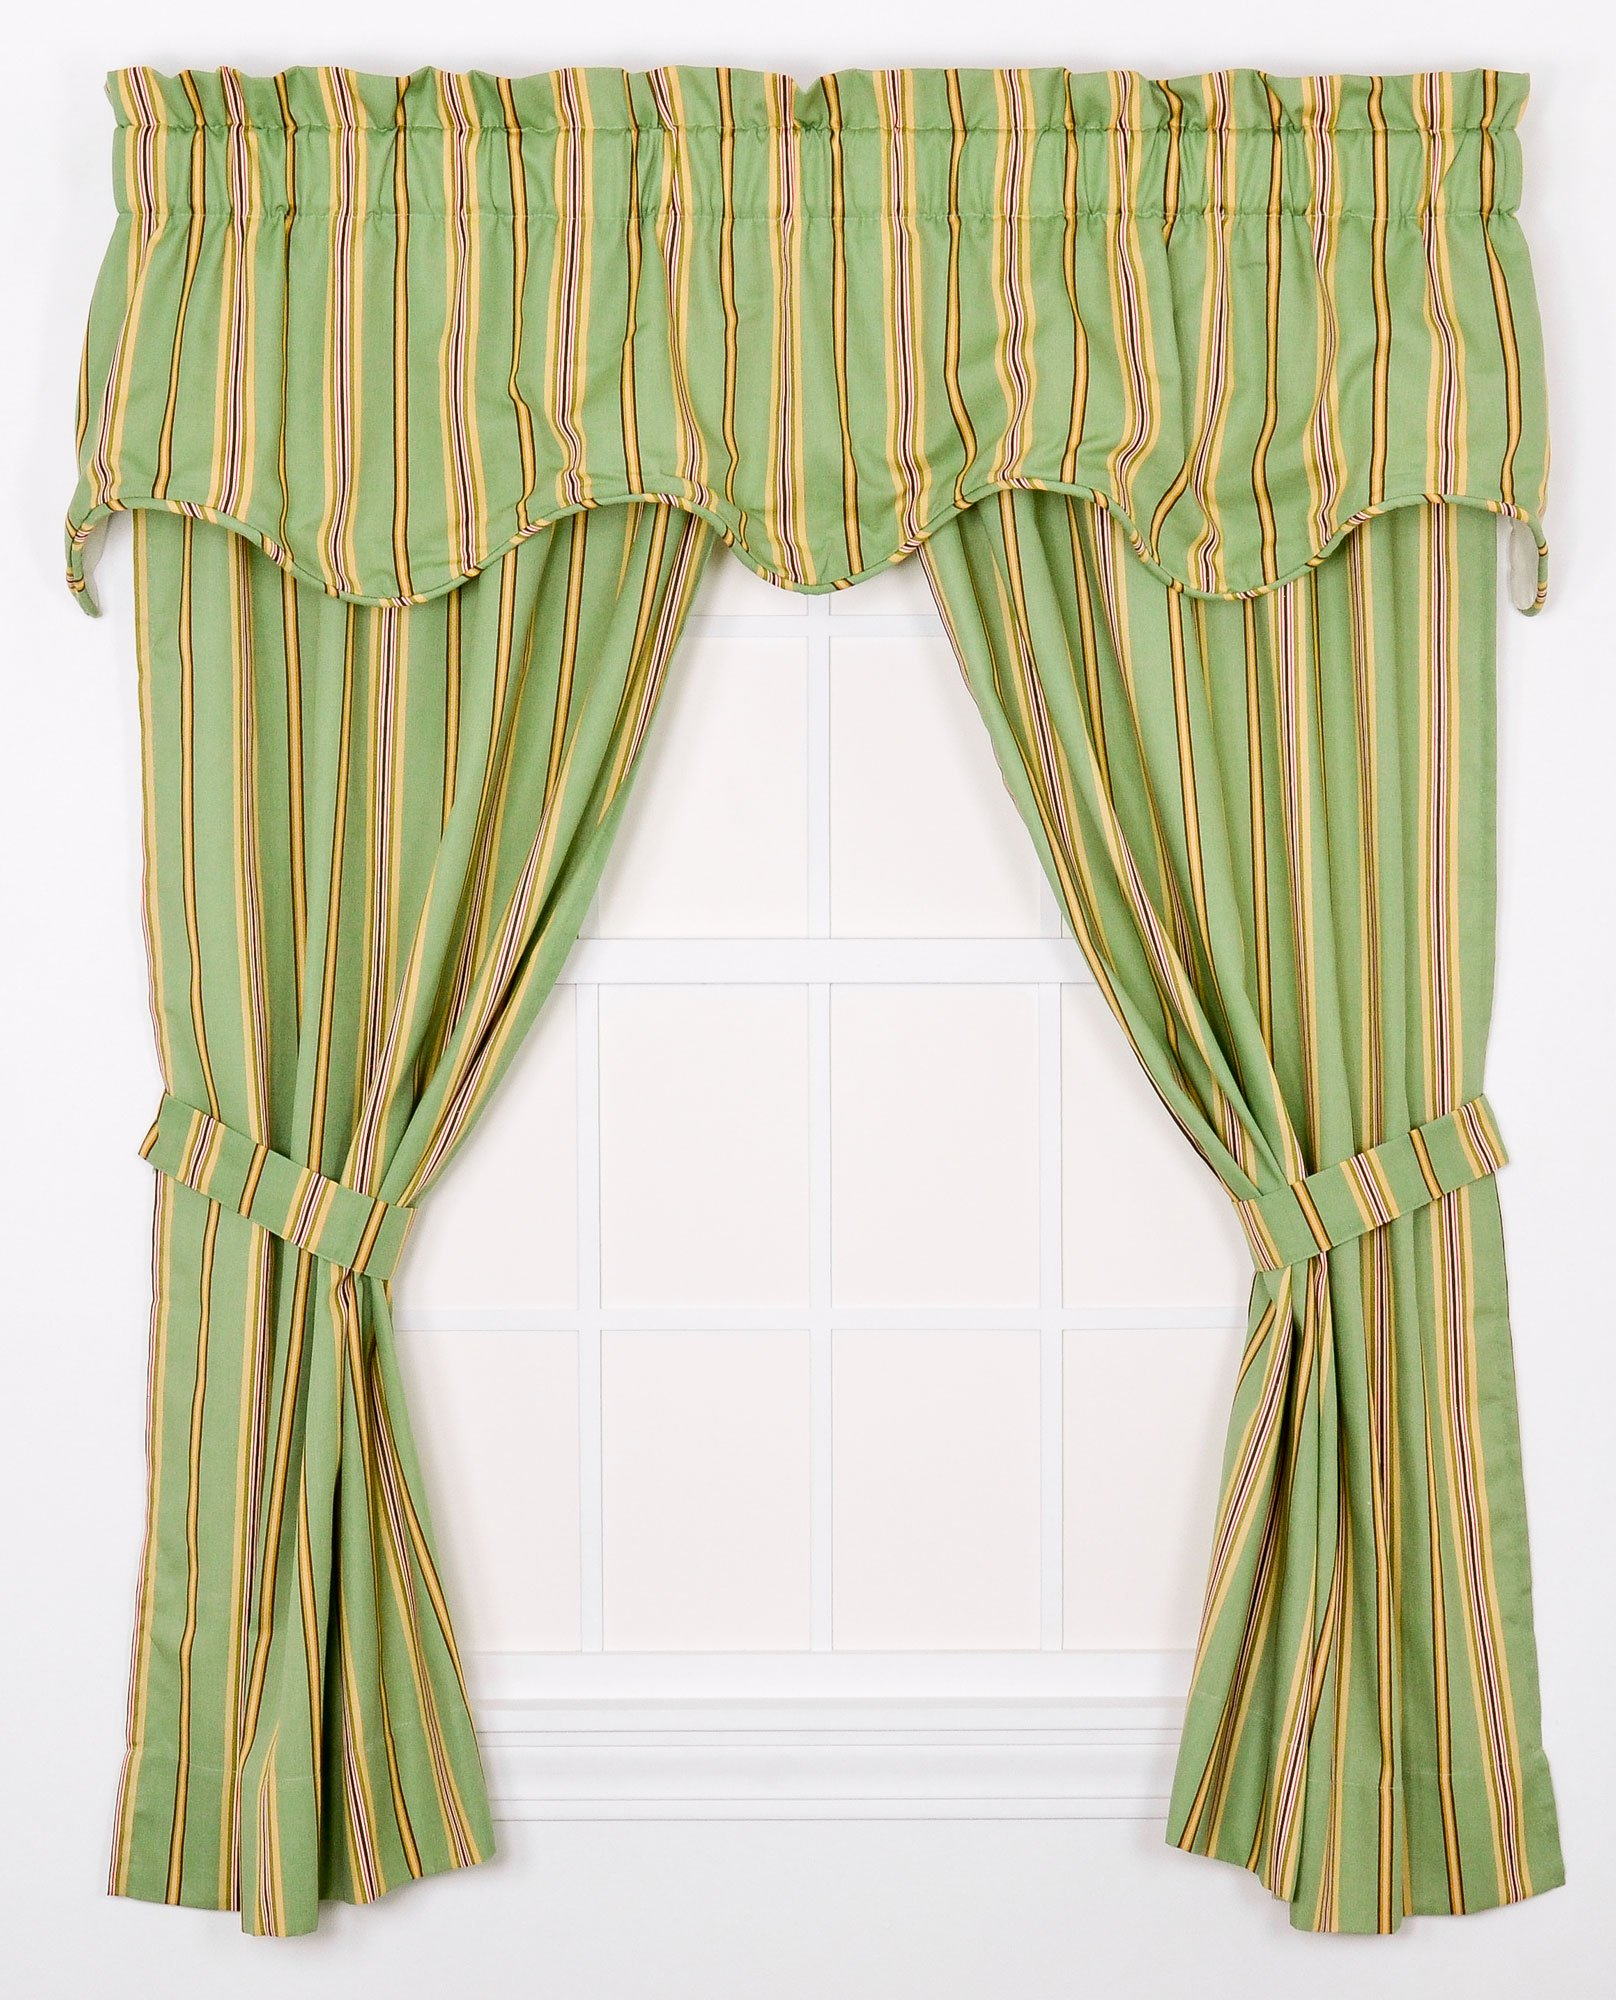 """Ellis Curtain Warwick Medium Scale Stripe 68 by 63-Inch Tailored Panel Pair Curtains with Tiebacks, Green - Multi colored medium scale vertically oriented stripe pattern featuring a range of shades and colors that coordinate easily with a variety of solids, checks, plaids, and florals makes it easy to fit within your home décor Made with 52-percent polyester/48-percent 5-ounce cotton duck fabric creates a smooth draping effect, soft texture and easy maintenance Panel is constructed with a 1.5"""" rod pocket, 2.5"""" header, and 5"""" bottom hem; sold in pairs (2 panels) - living-room-soft-furnishings, living-room, draperies-curtains-shades - 91S2BE%2BaAIL -"""